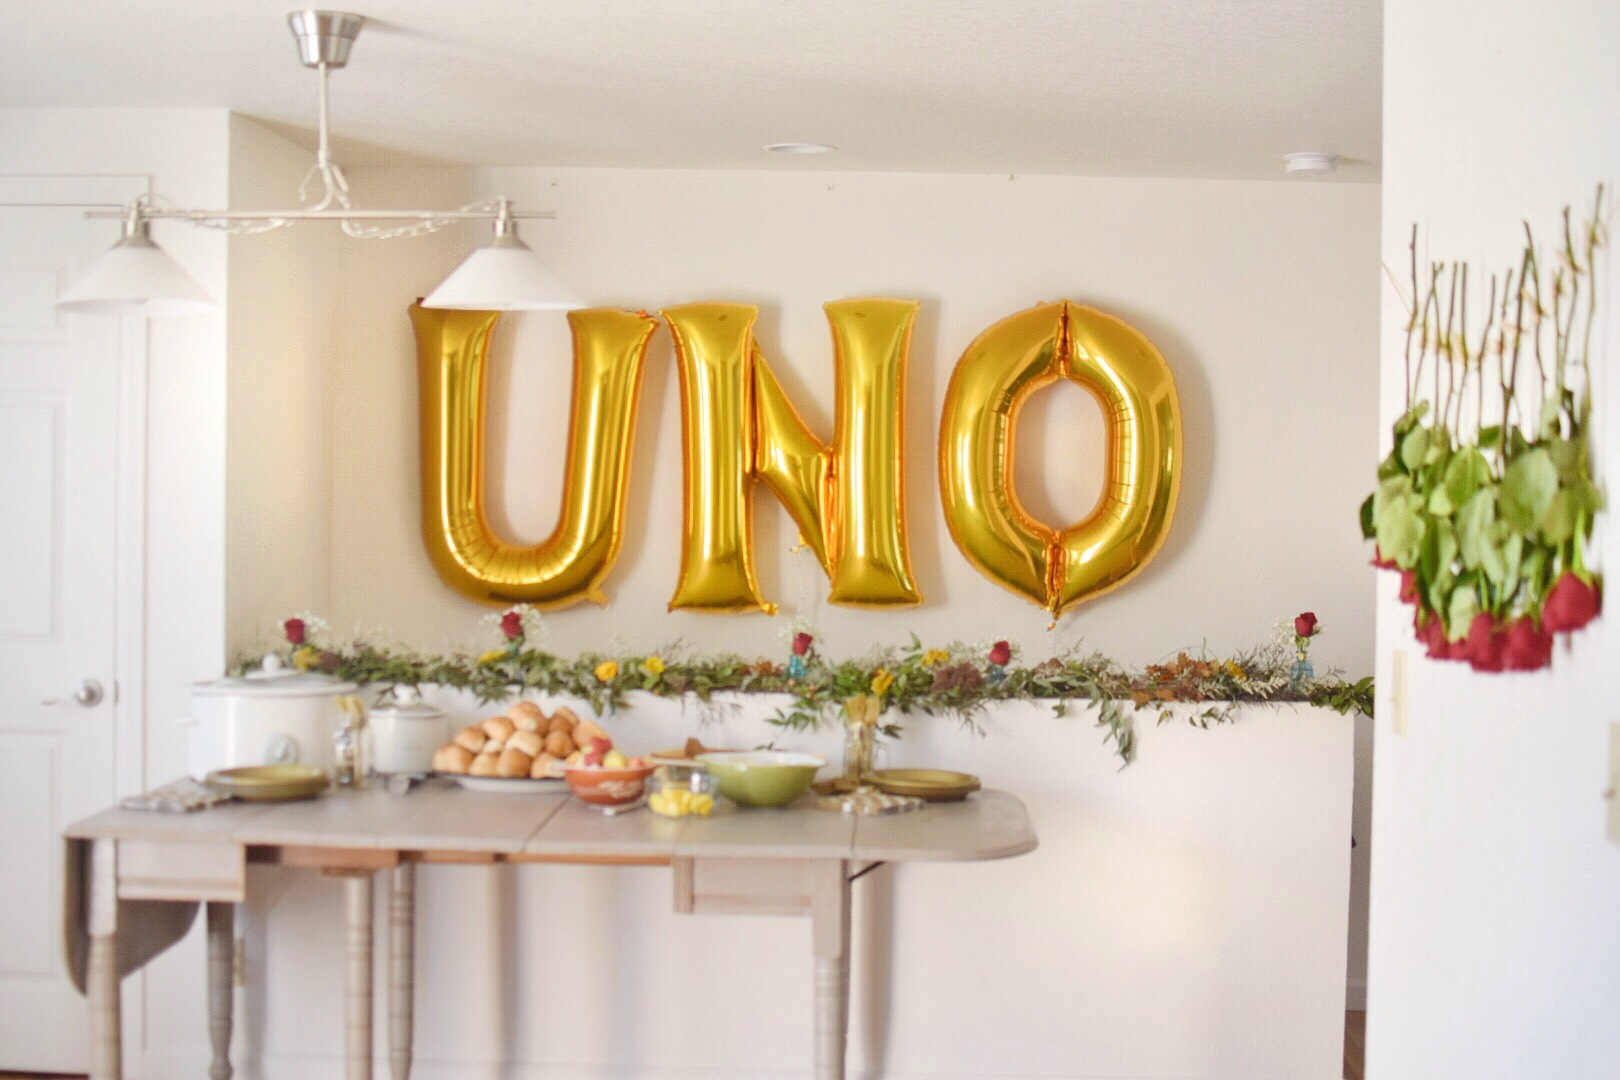 A first birthday party idea: Get large balloons to make a statement! To make things easy on us, we had a pot luck with breakfast goodies complete with a Bloody Mary bar. I think we earned those drinks! The first year of raising a human is no joke :)